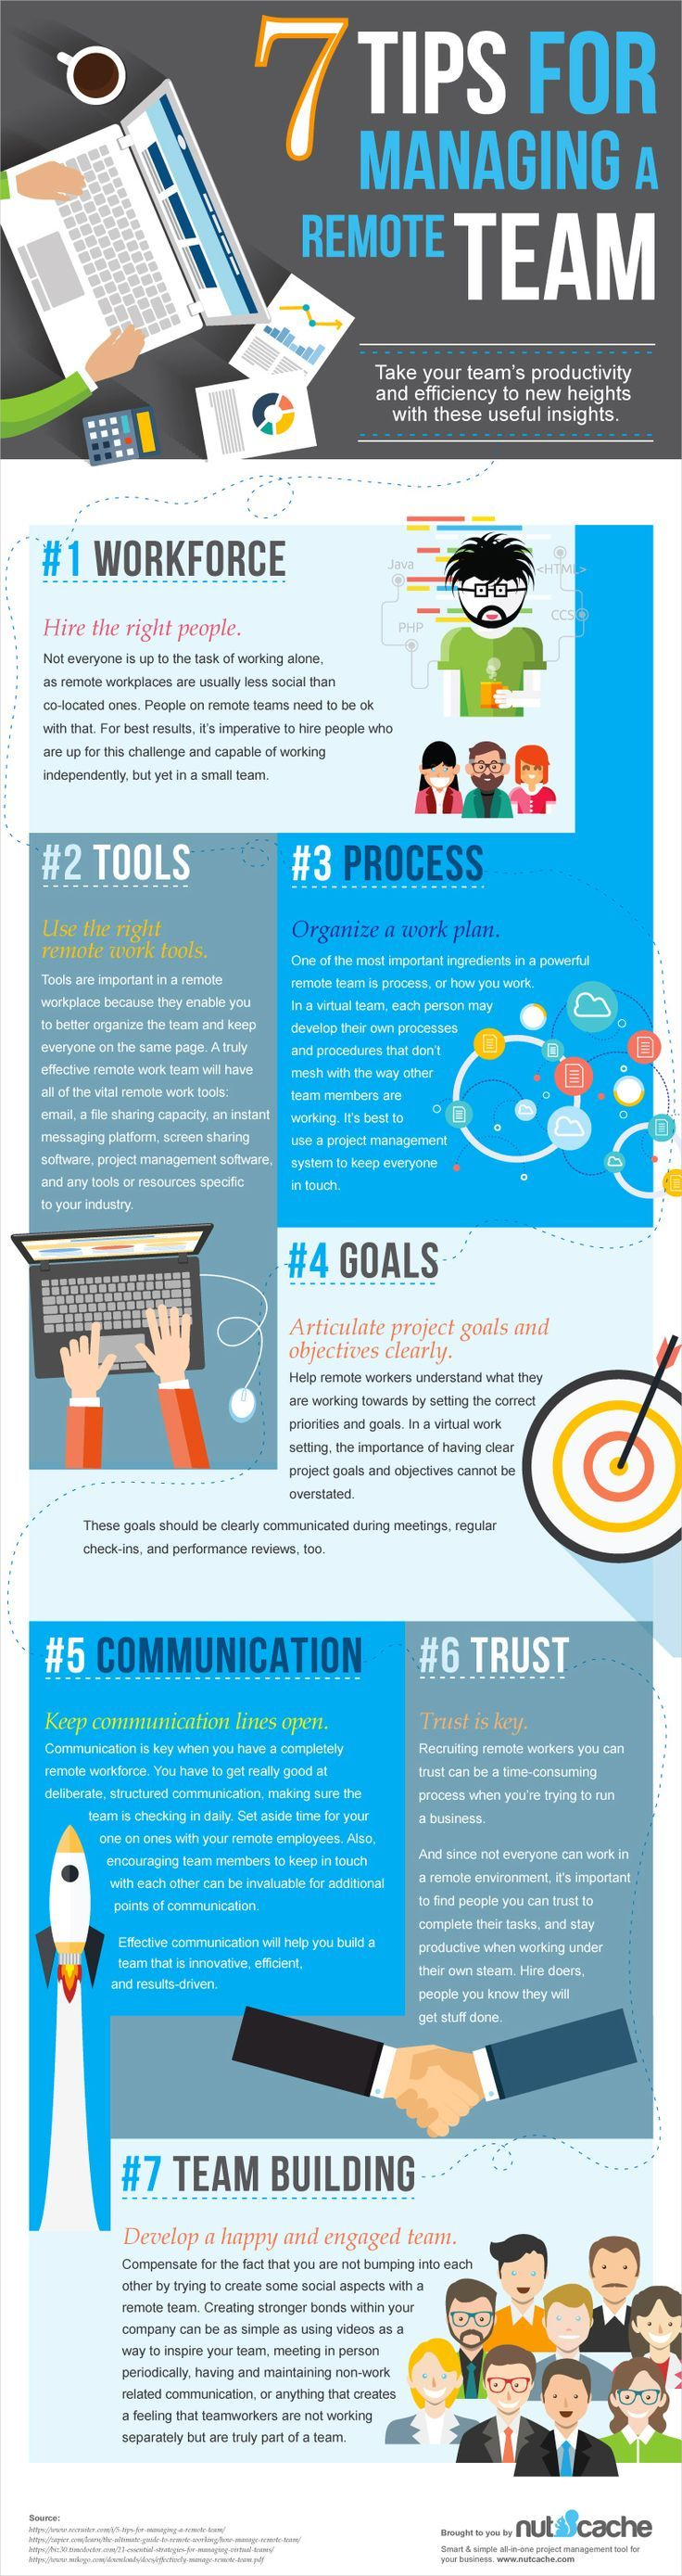 7 Tips for Managing a Remote Team (Infographic)